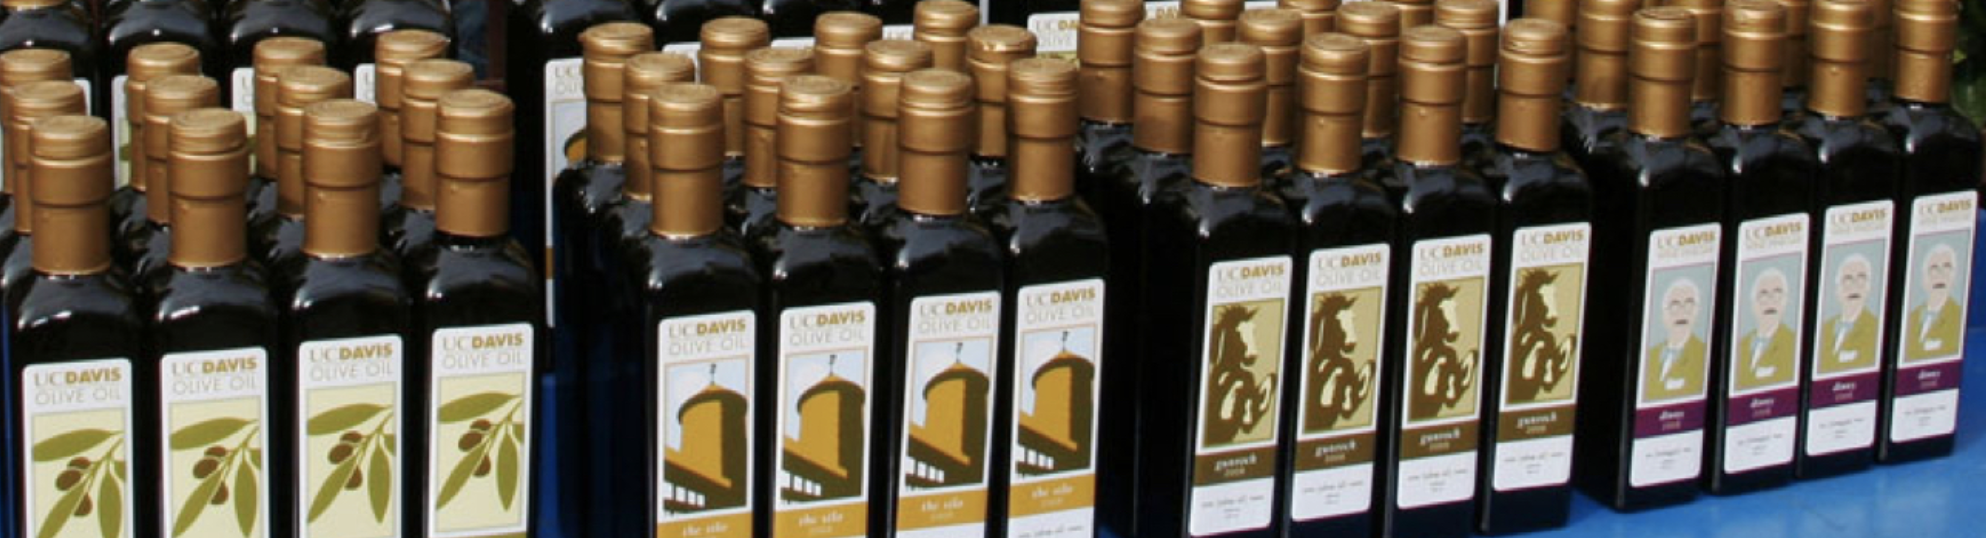 uc davis olive oil product